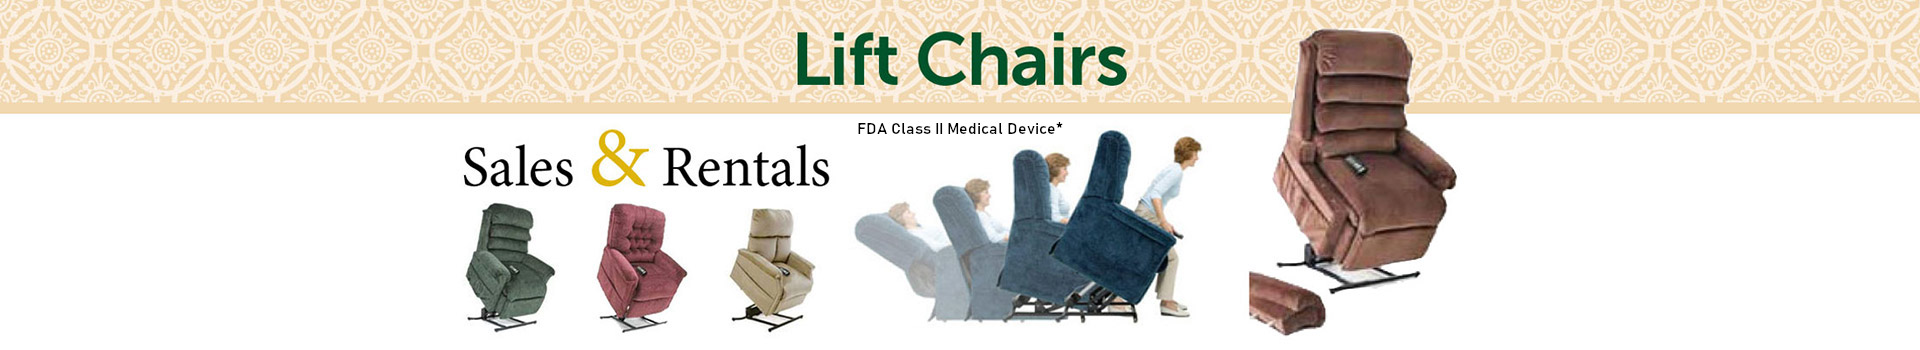 Lift-Chairs